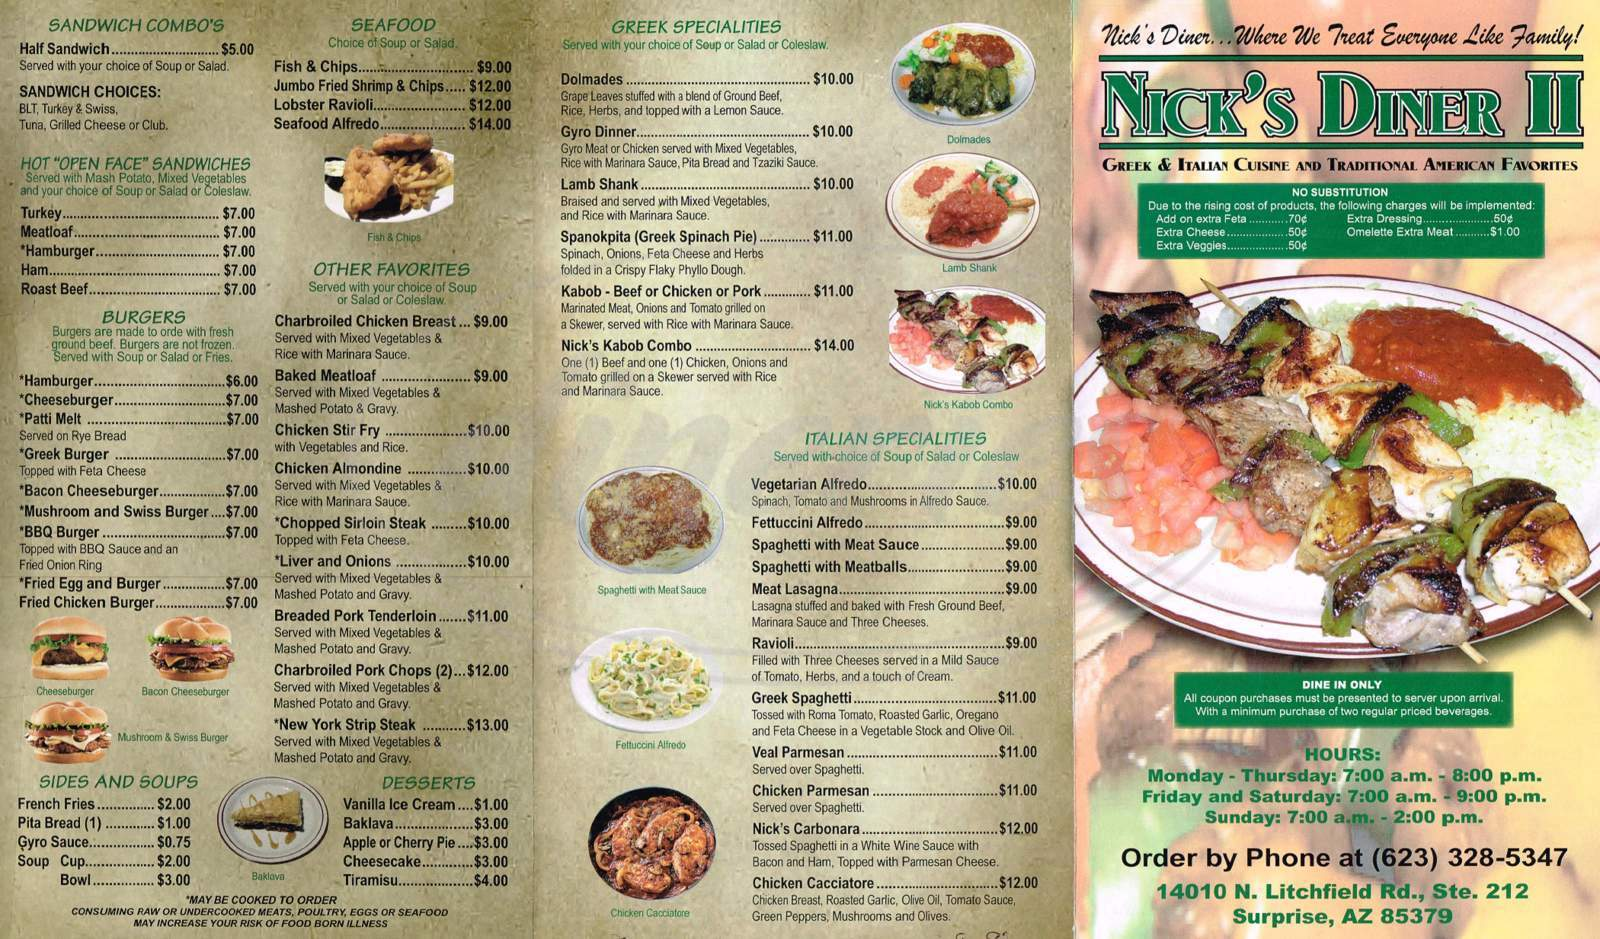 menu for Nick's Diner II, LLC